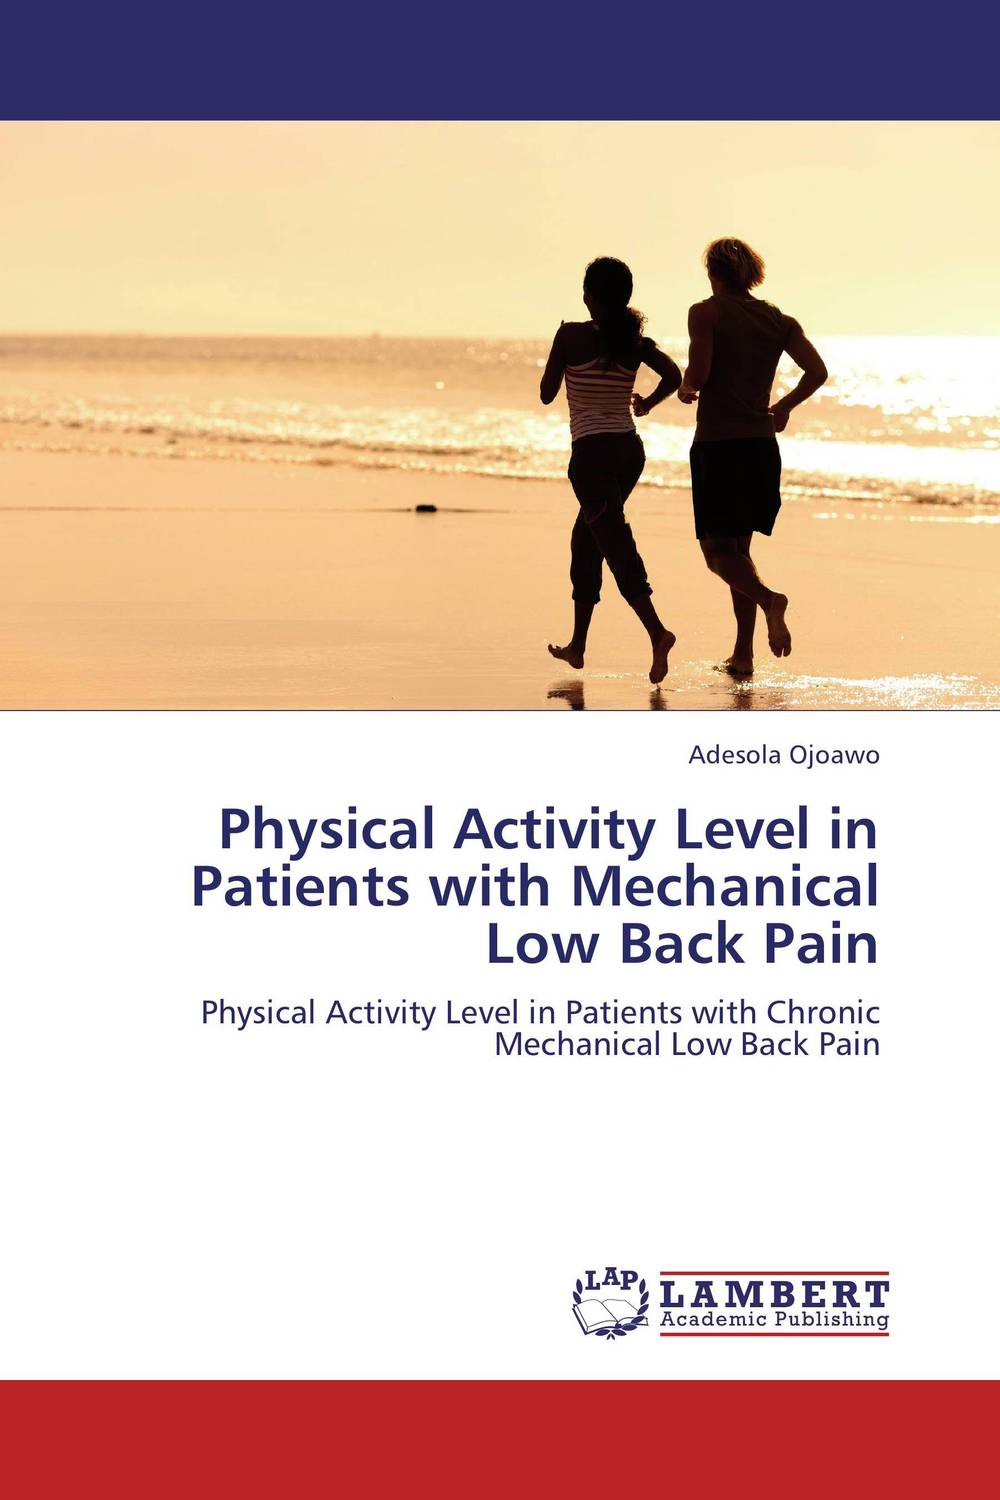 Physical Activity Level in Patients with Mechanical Low Back Pain relationship between physical activity level and exercise capacity